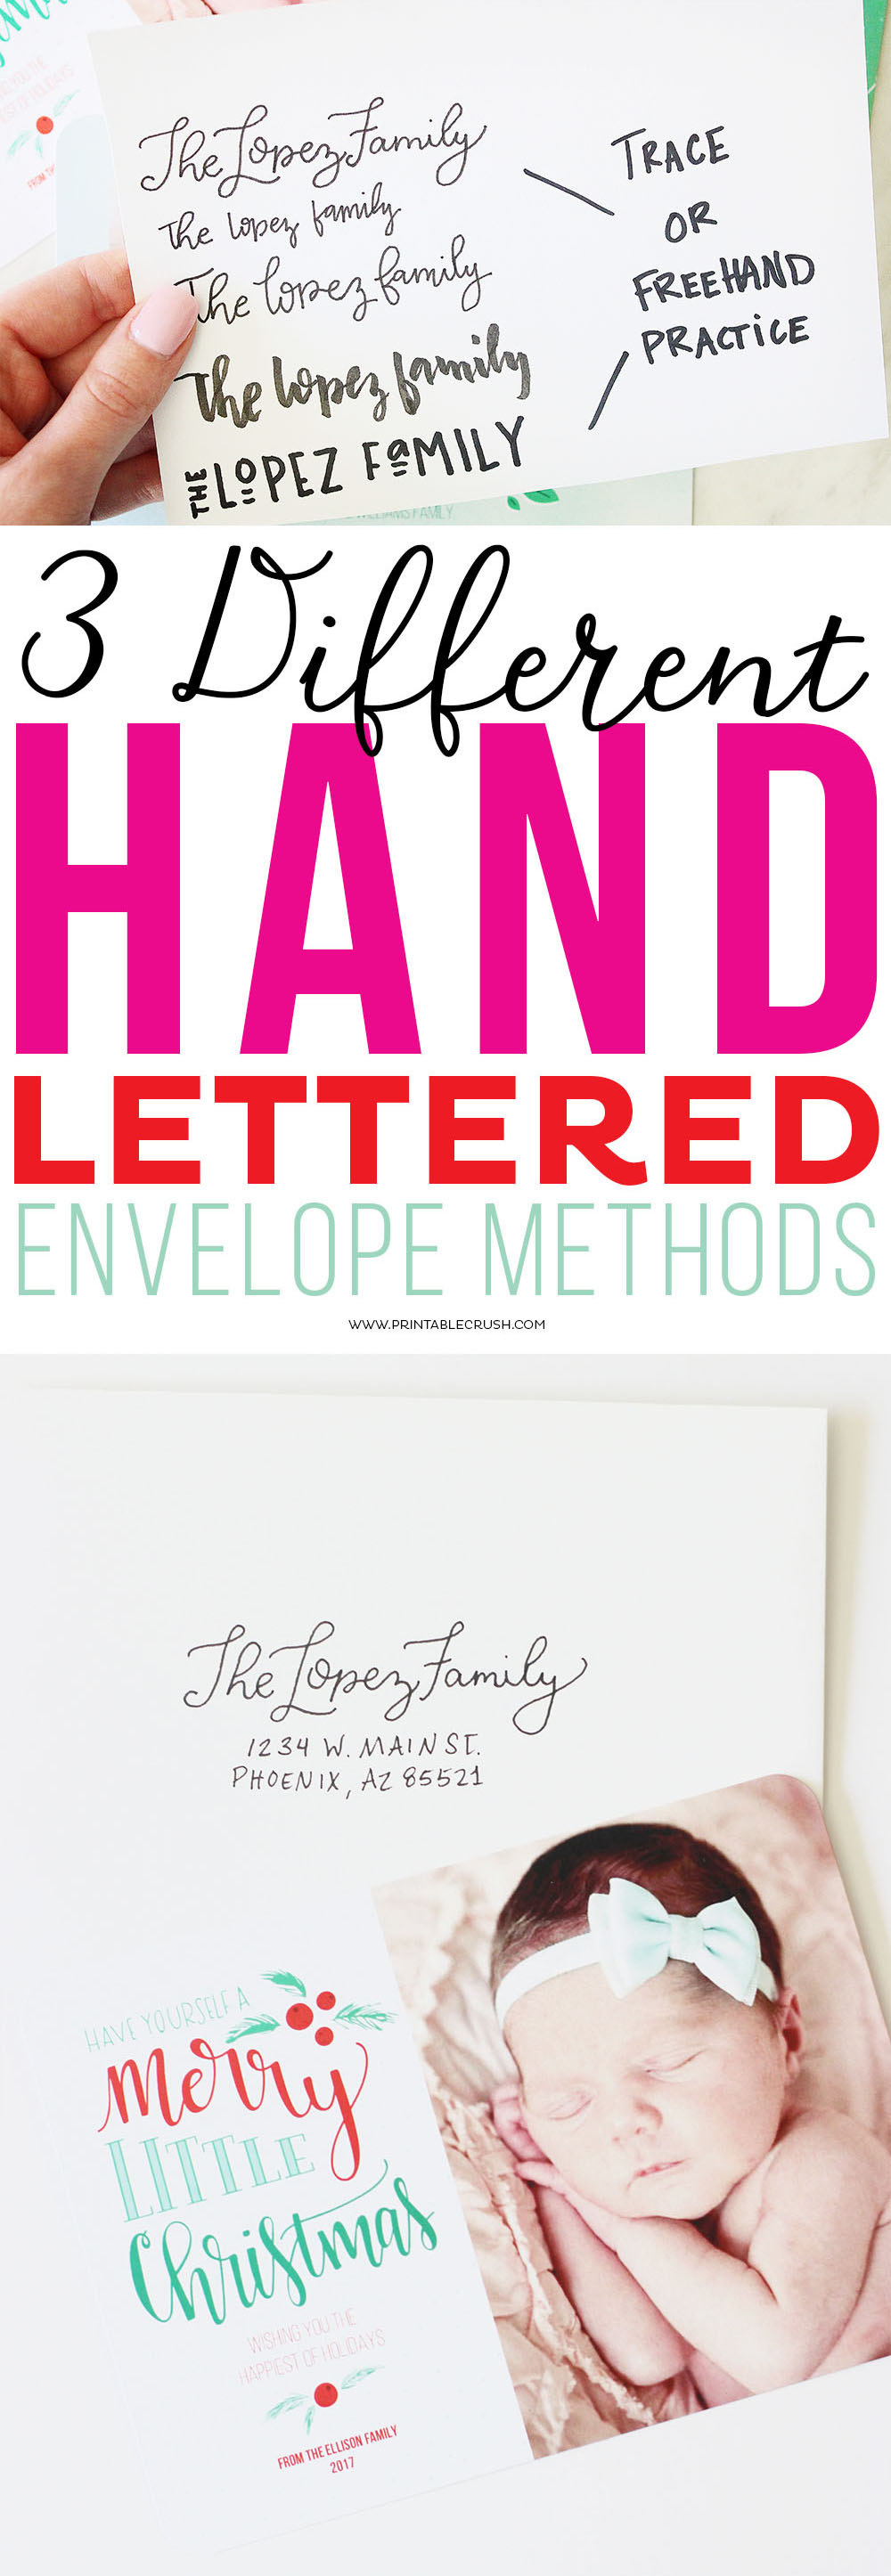 3 Different Hand Lettered Envelope Methods - Printable Crush